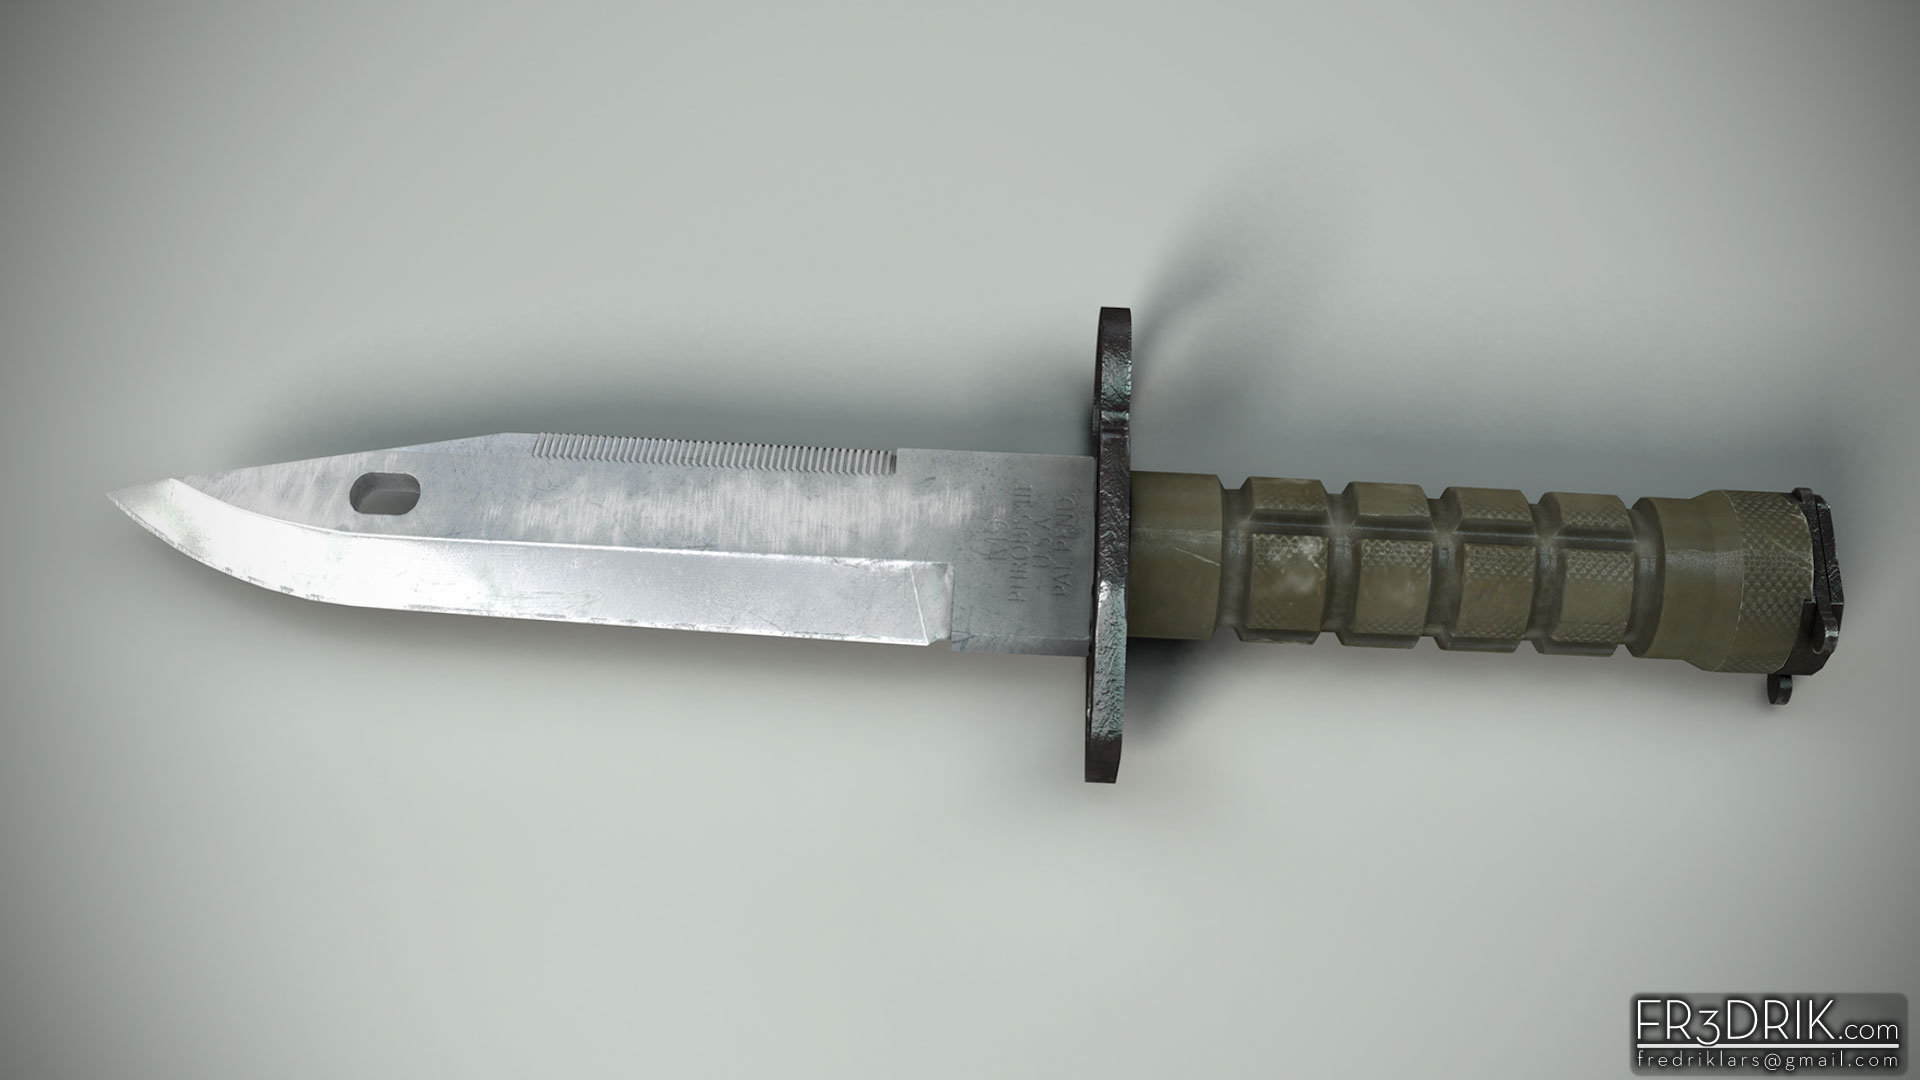 M9 combat knife. Mostly maya modelling with just a small detail pass in zbrush.